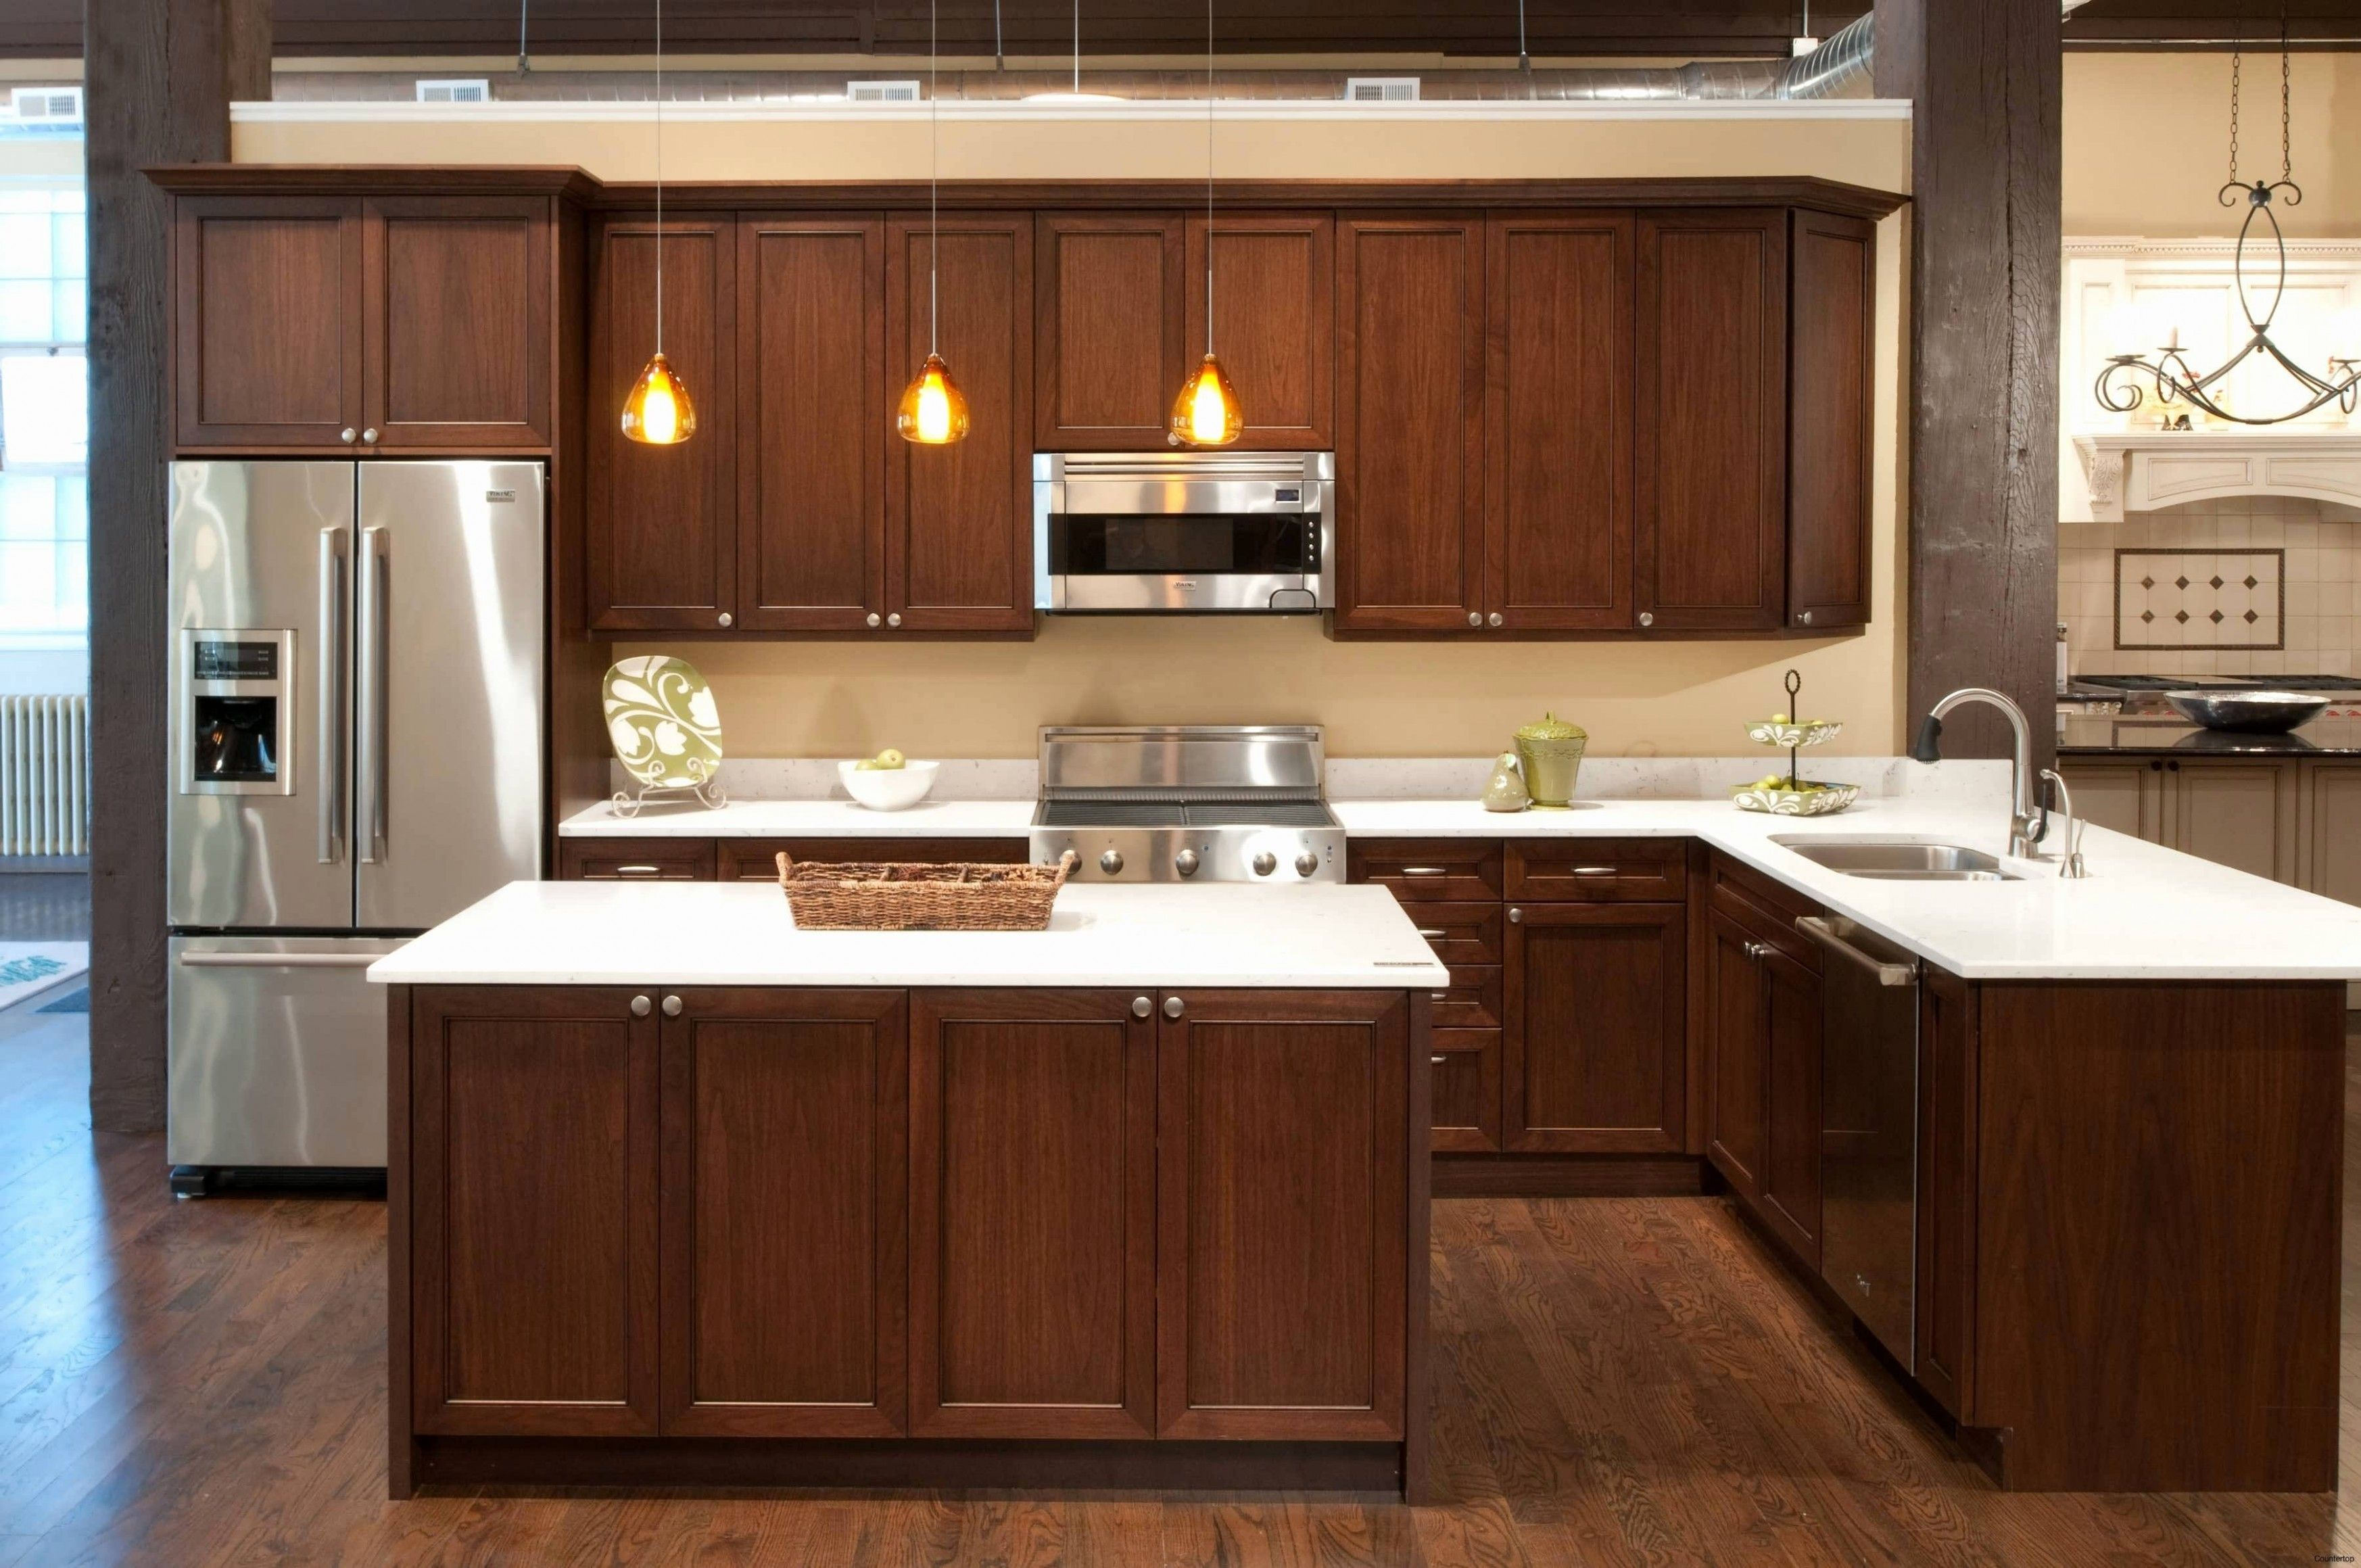 Craigslist Missouri Used Kitchen Cabinets For Sale